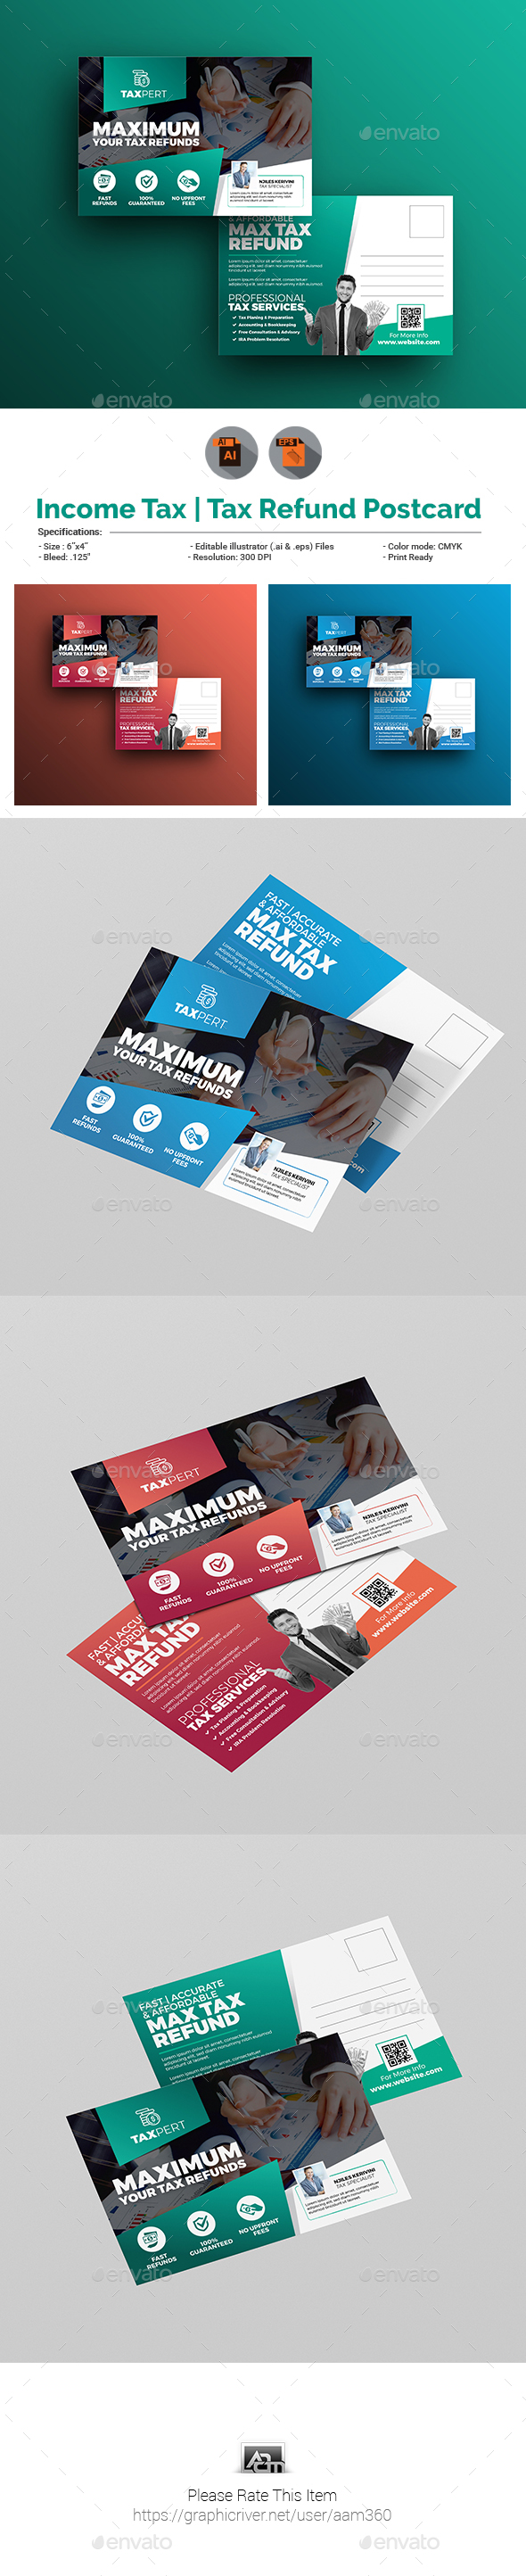 Income Tax / Tax Refund Postcard Template by aam360 | GraphicRiver